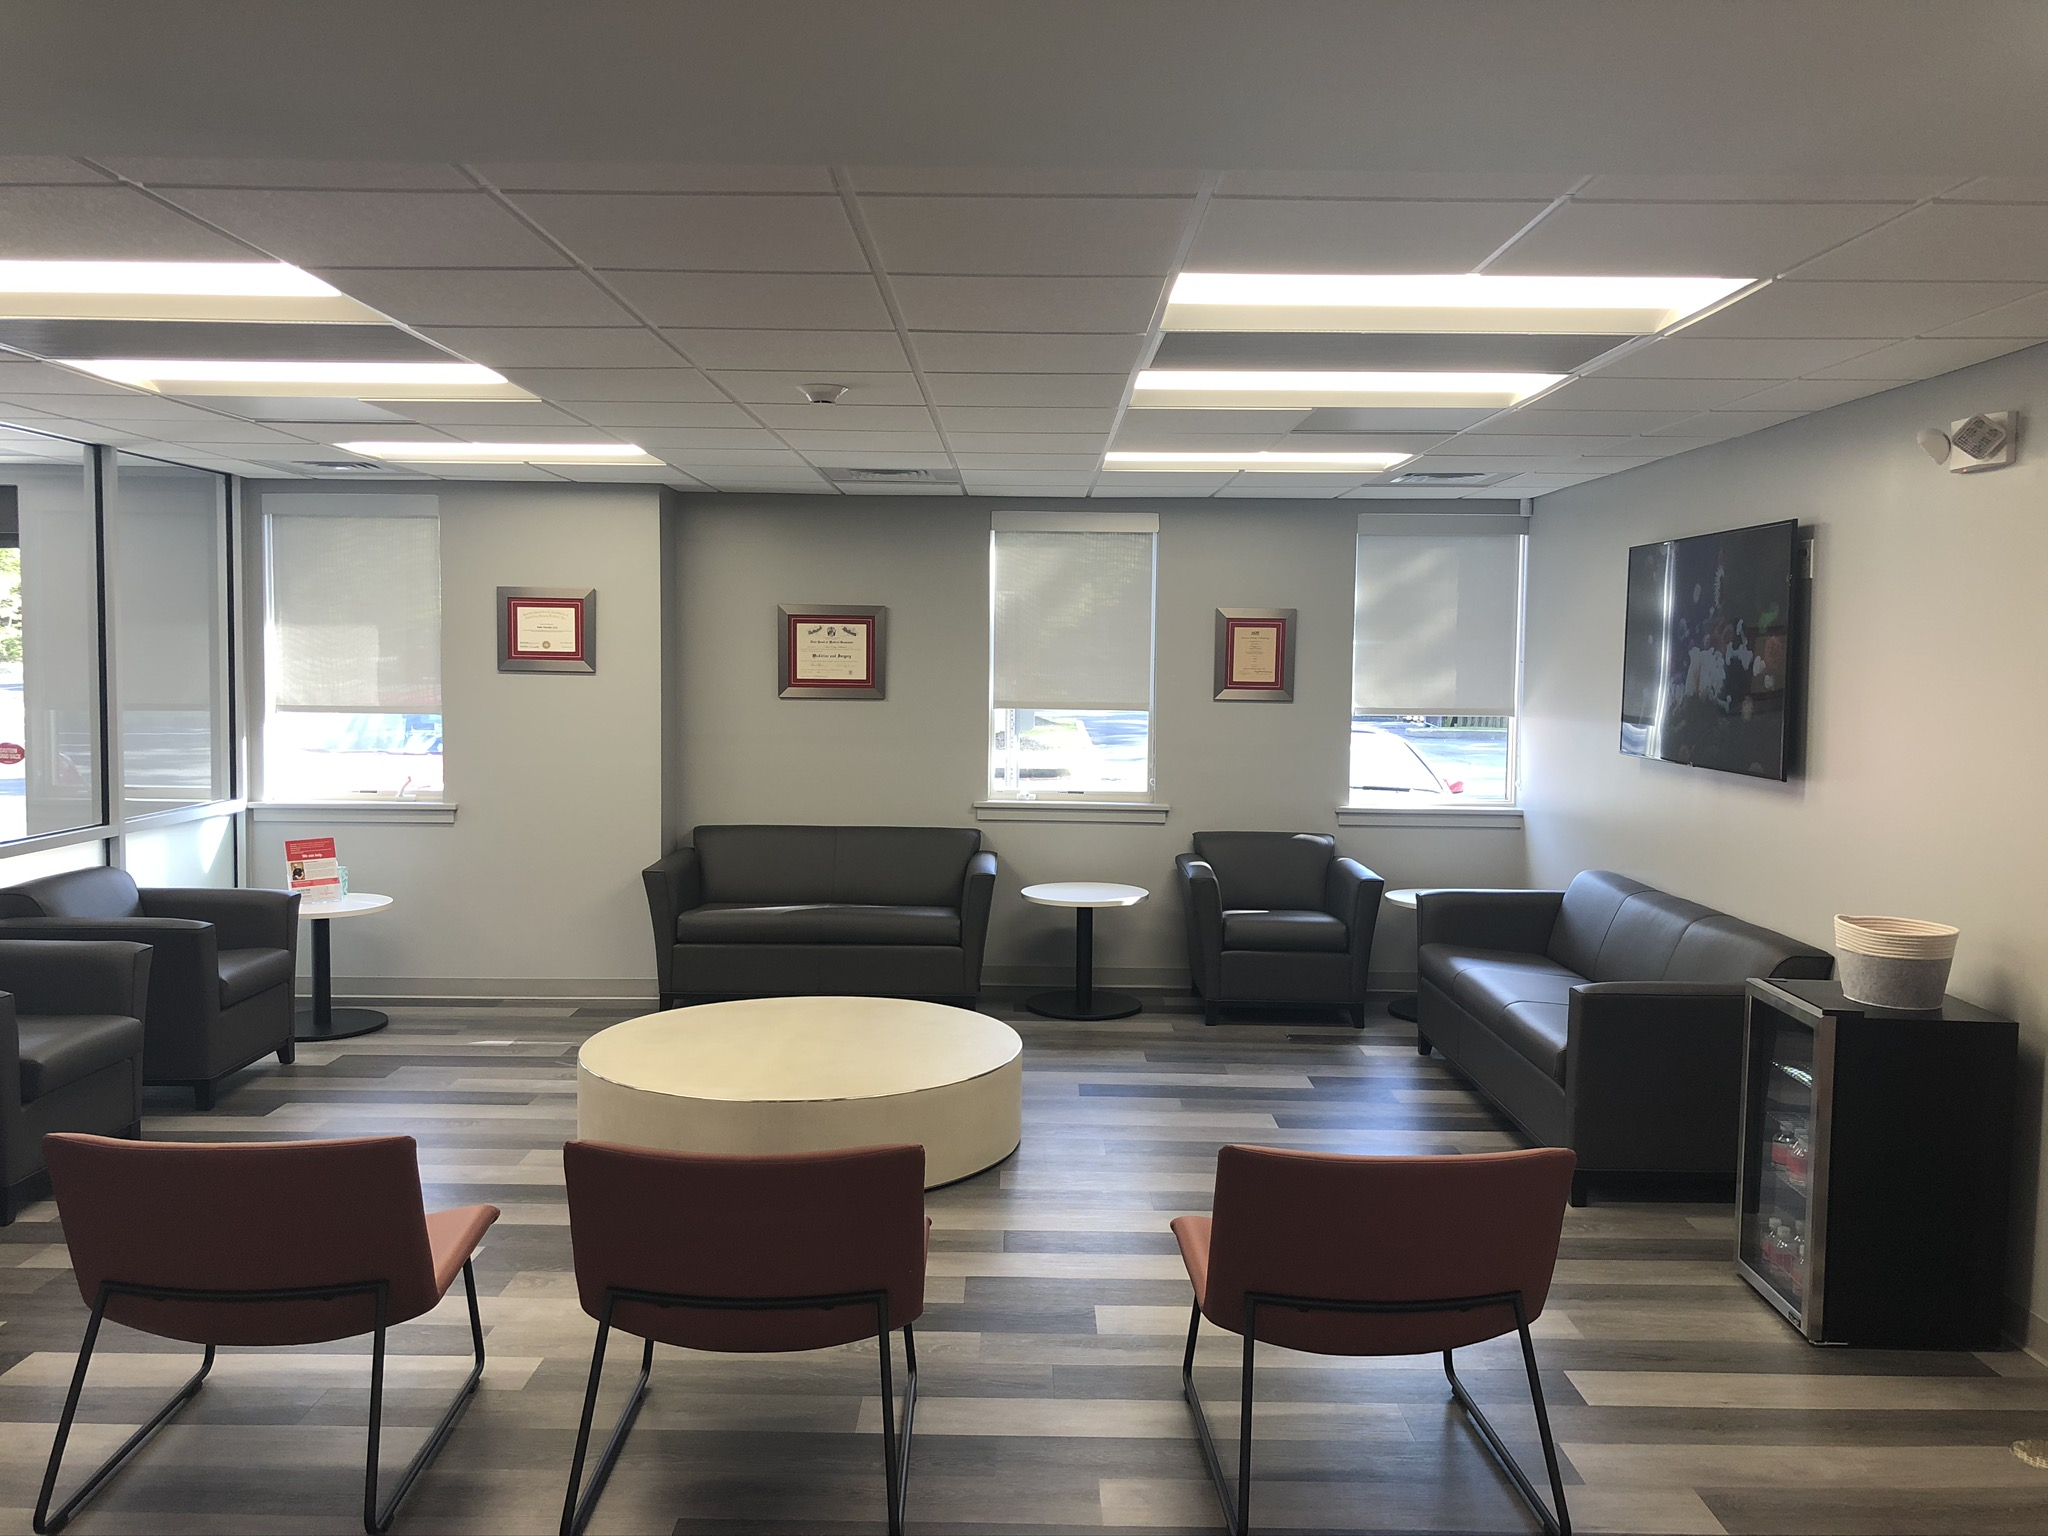 Large, comfortable waiting area